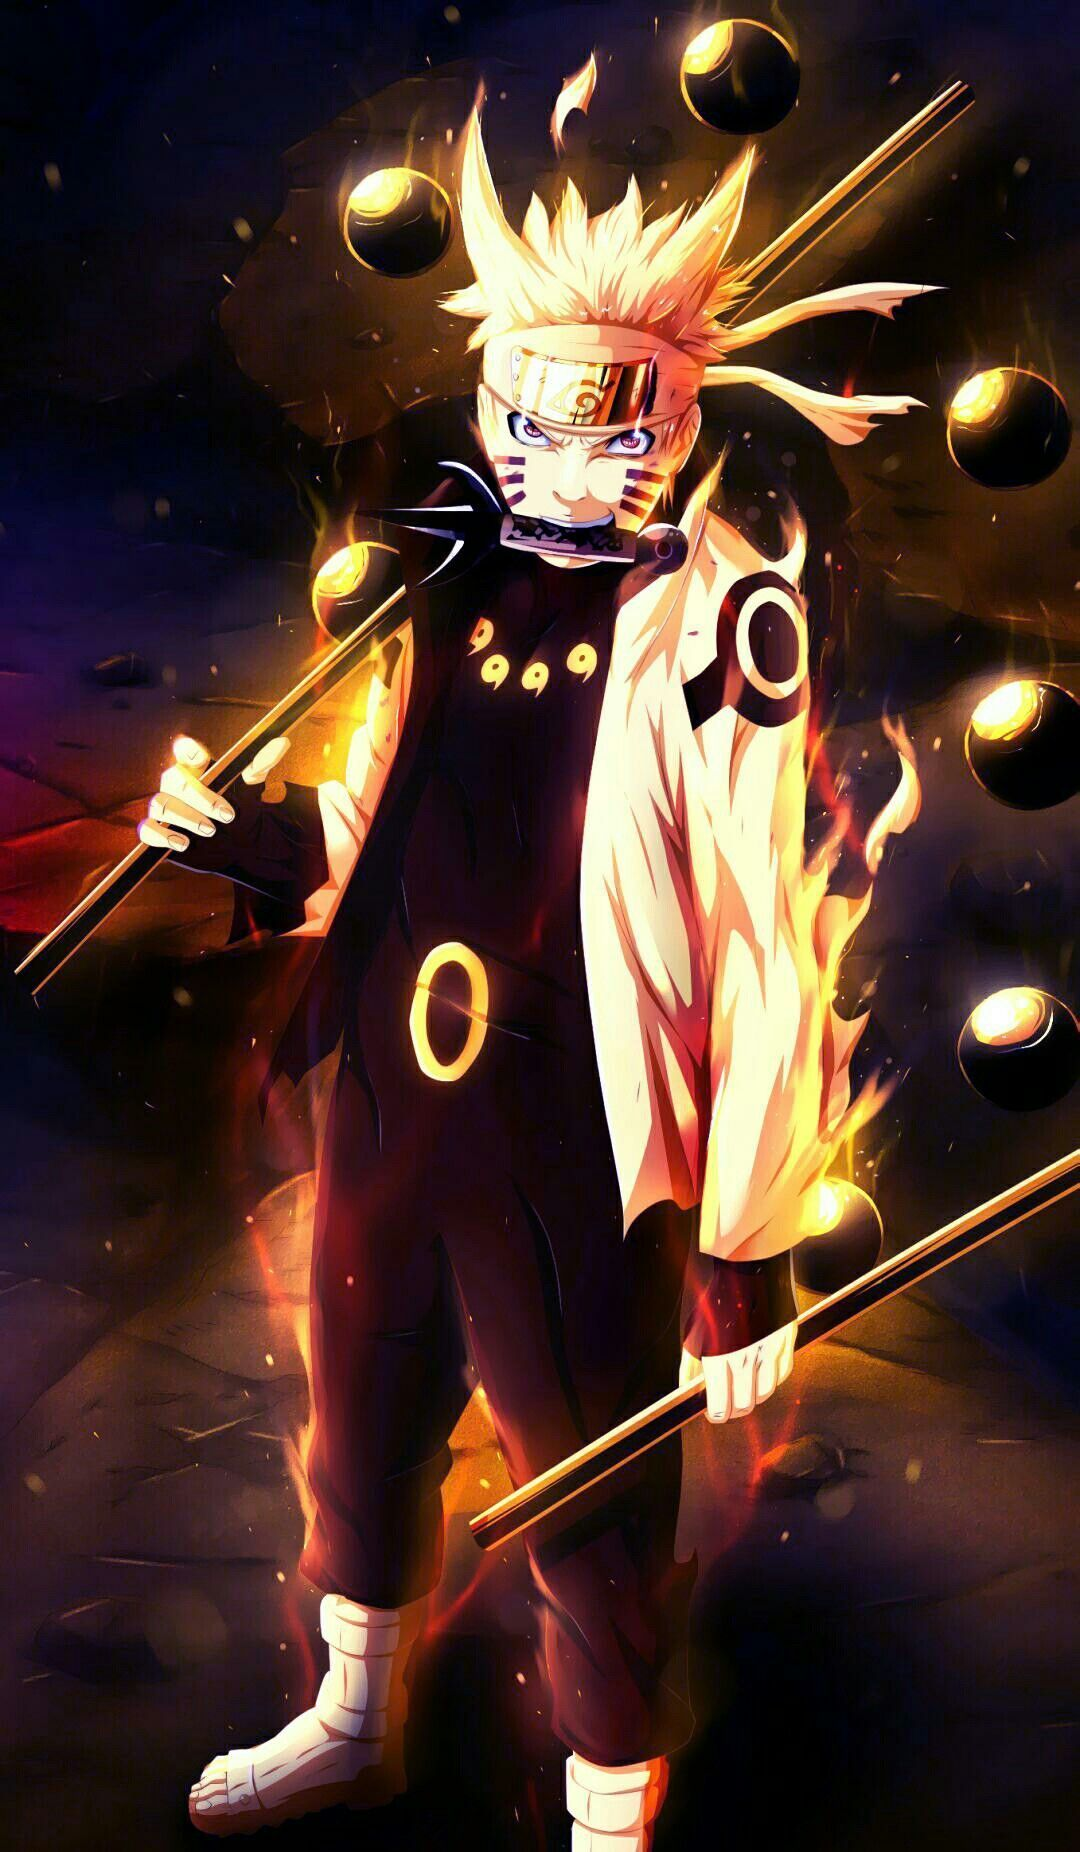 Naruto Shippuden iPhone - Android, iPhone, Desktop HD Backgrounds / Wallpapers (1080p, 4k) (171289) - Anime